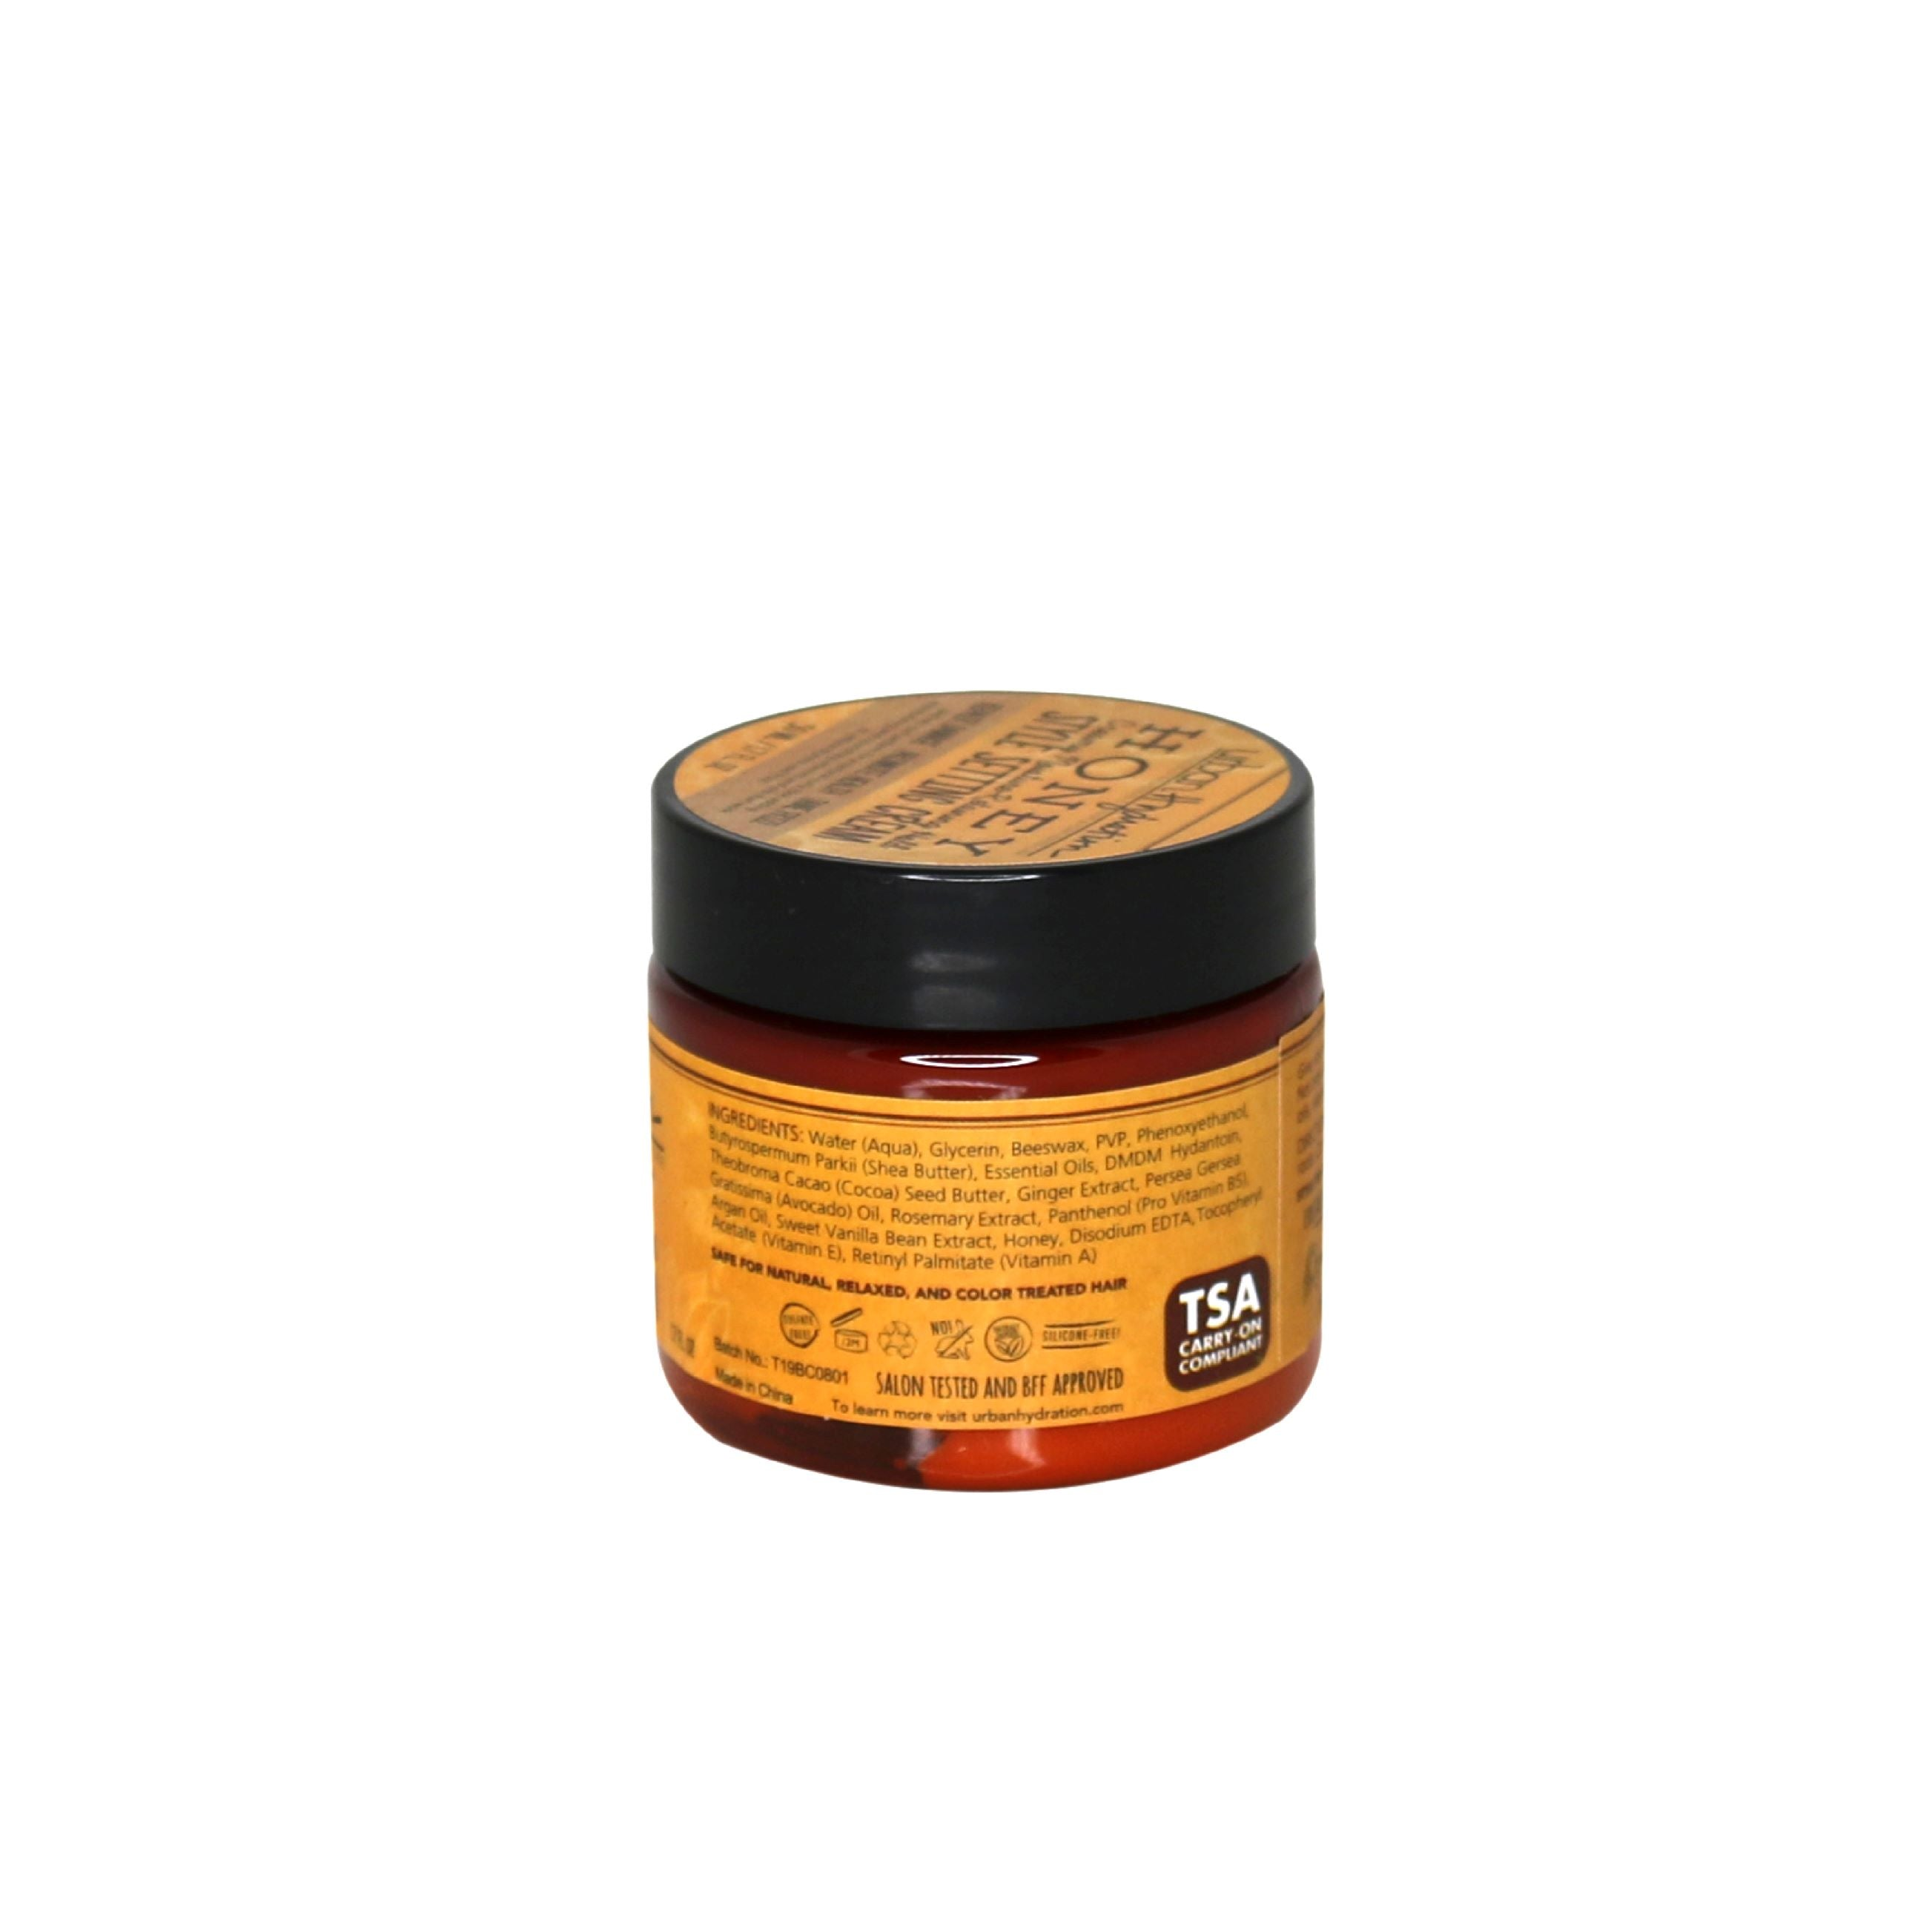 TSA Approved Honey Health & Repair Style Cream